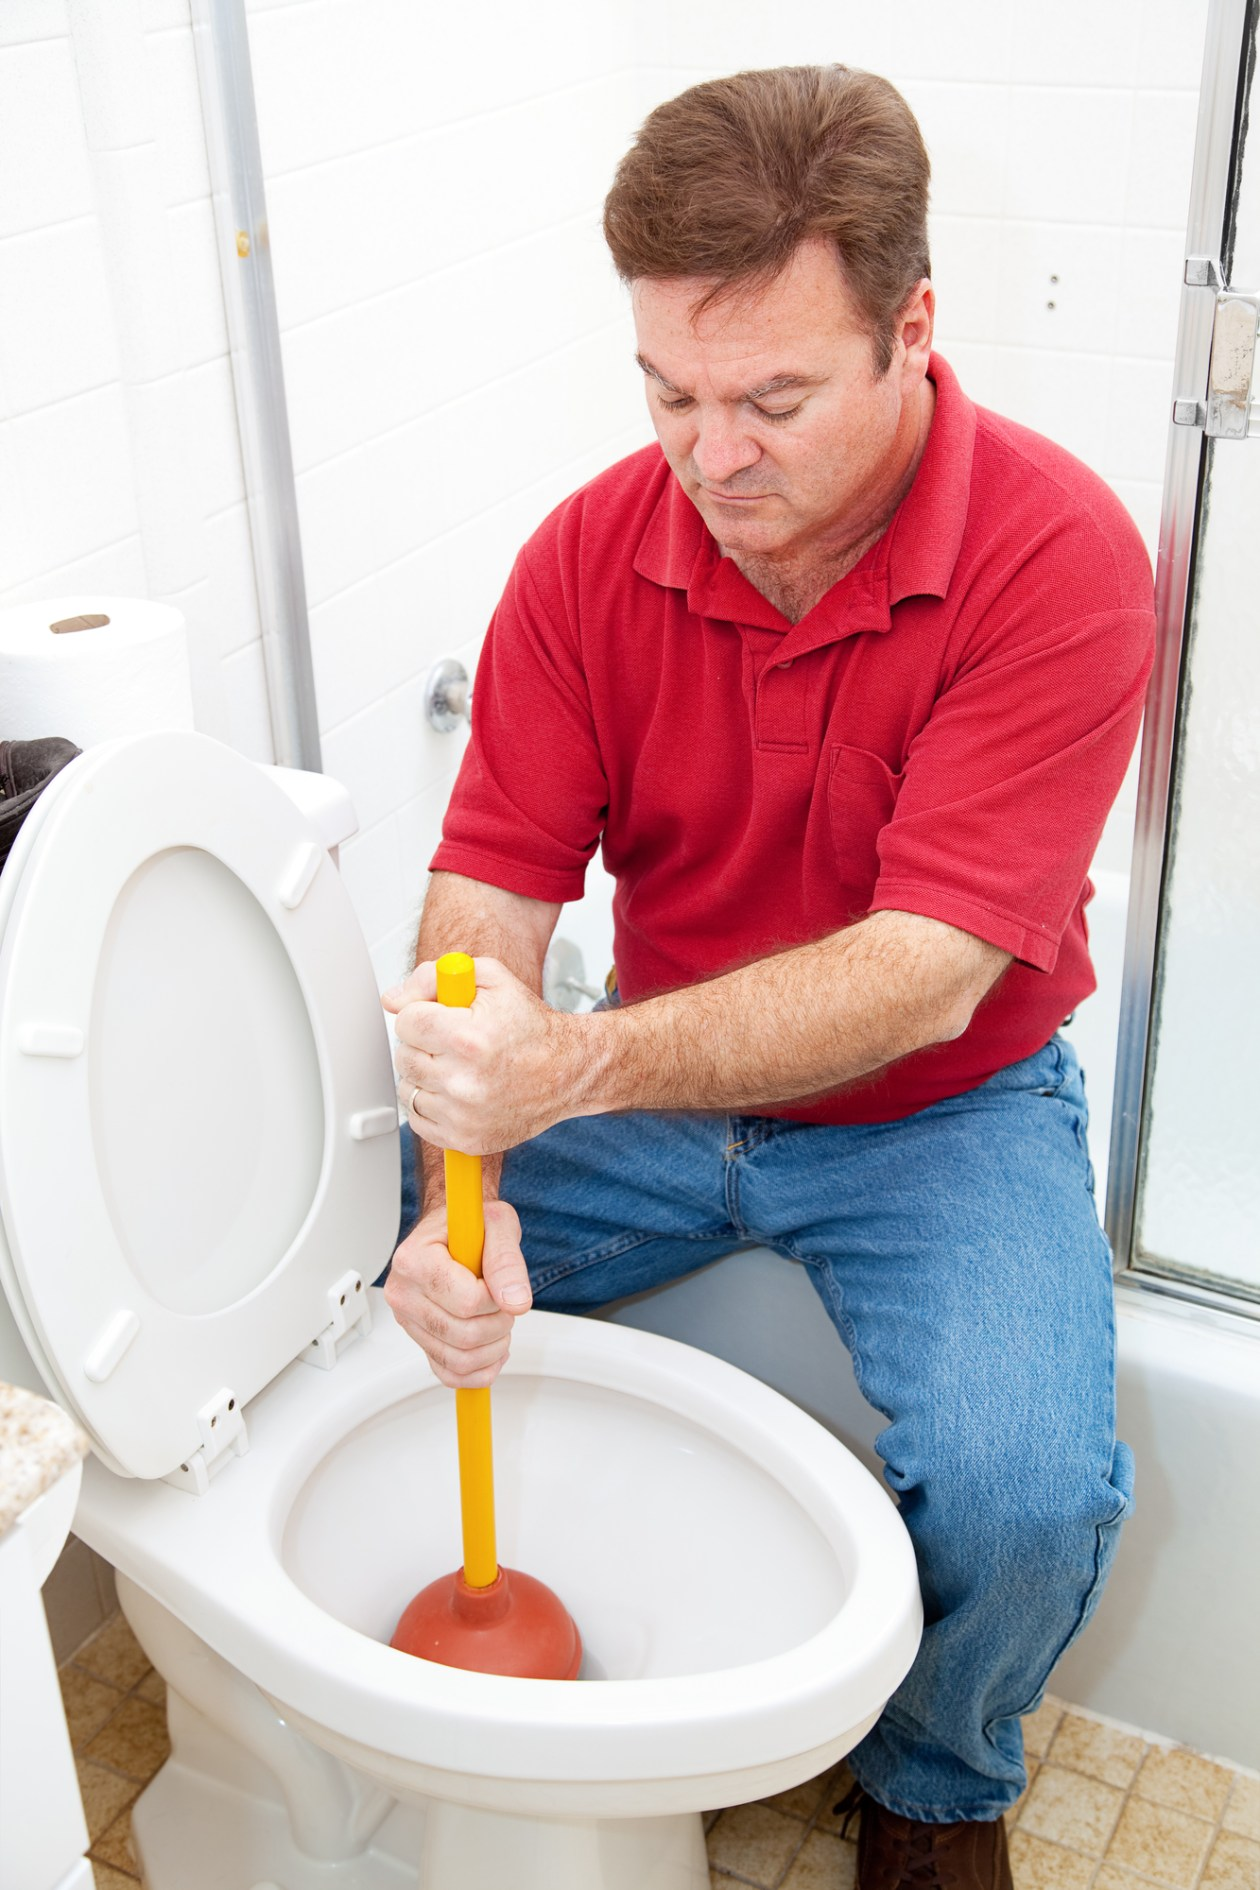 010-Scottsdale-Feb-11-How-to-Unclog-a-Toilet